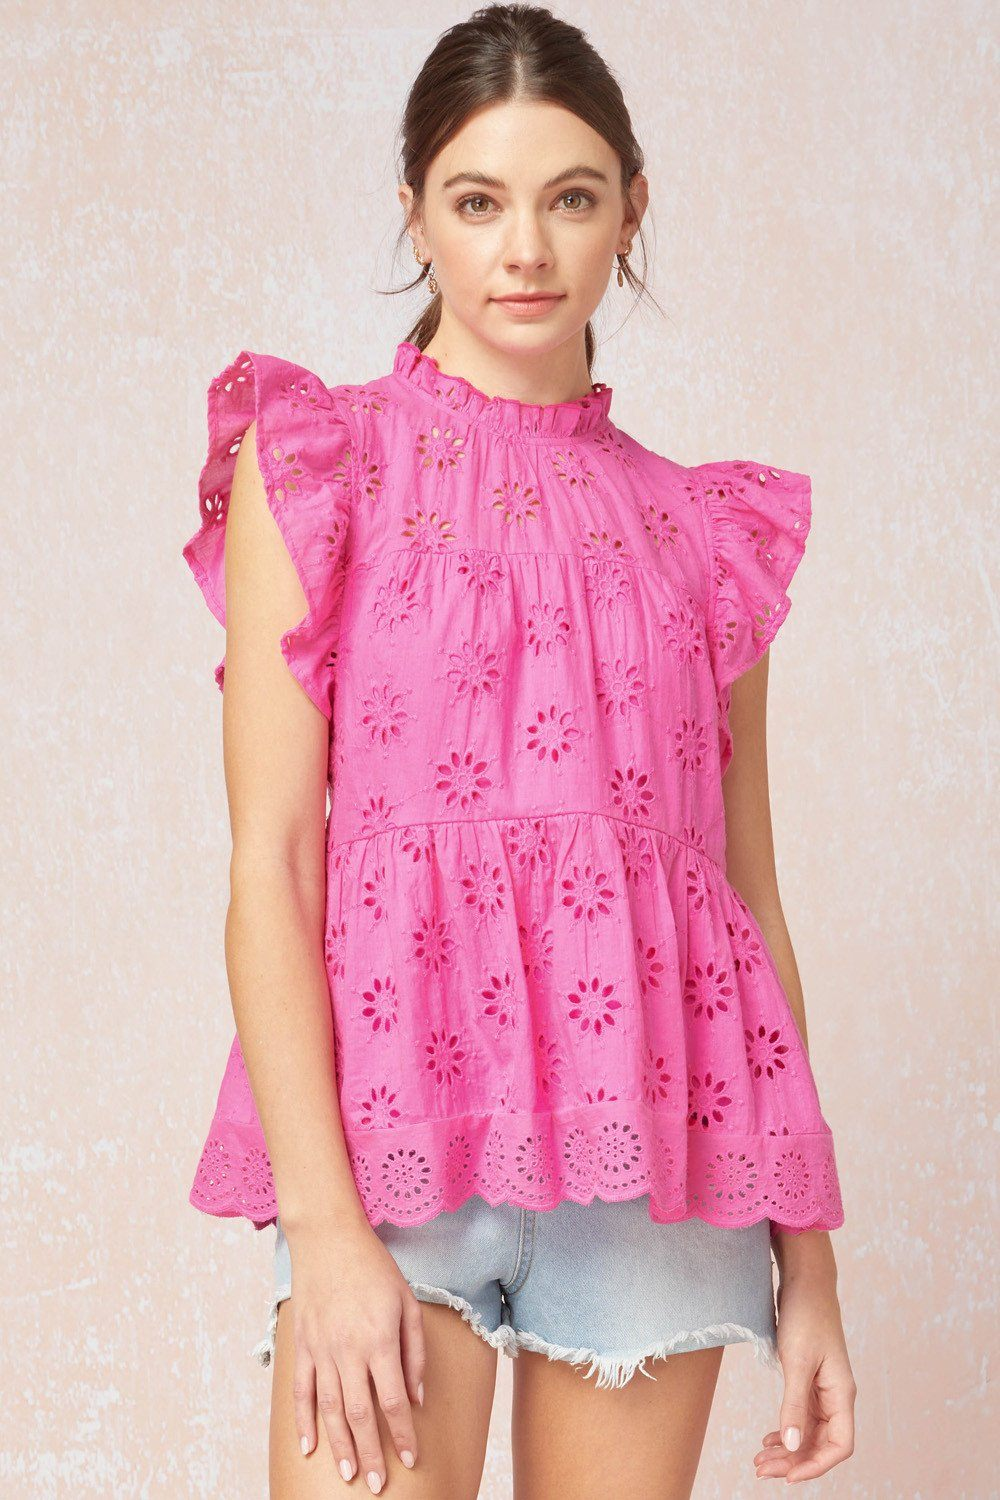 Bright & Happy Eyelet Top - Caroline Hill